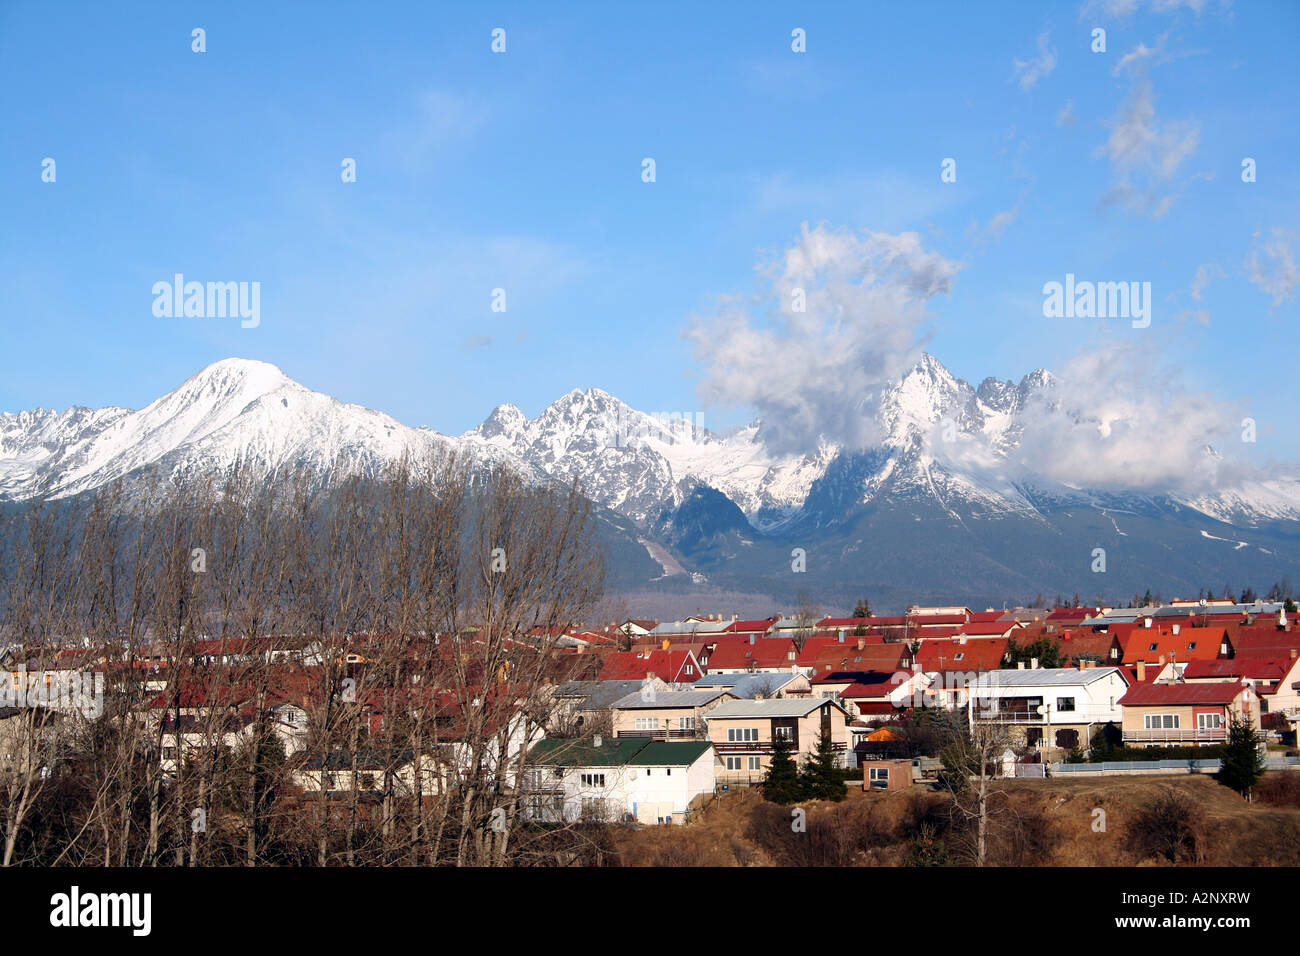 High Tatras Mountains and City of Poprad in Slovakia in Winter - Stock Image